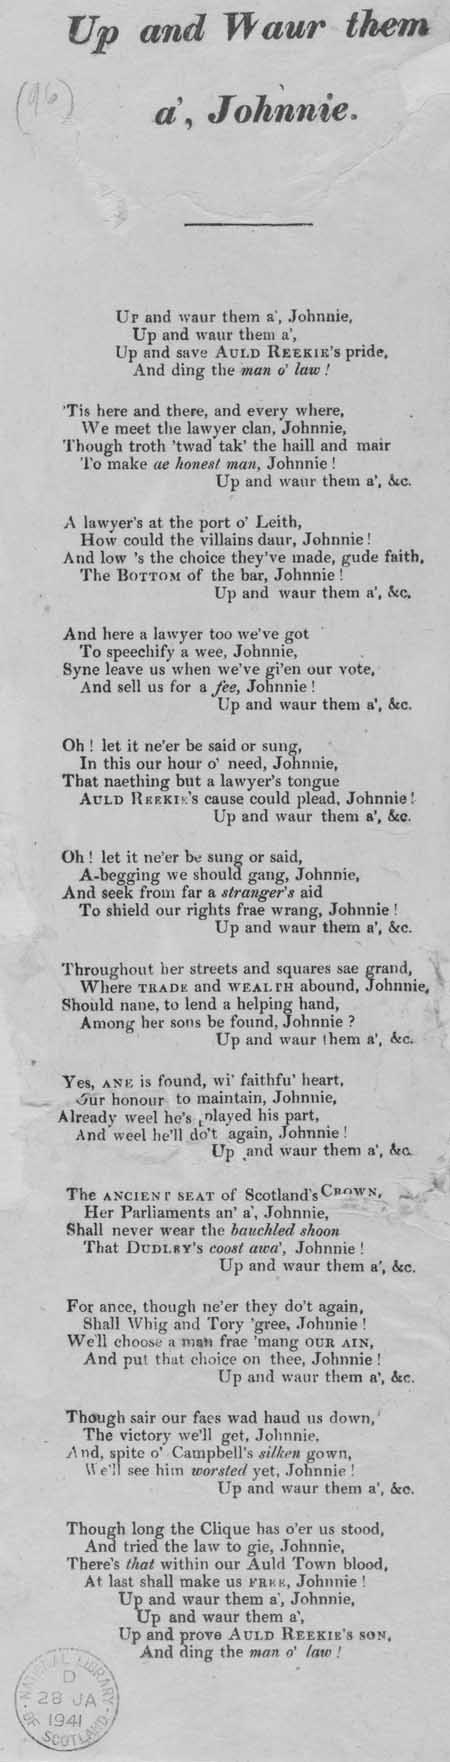 Broadside ballad entitled 'Up and Waur Them A', Johnnie'